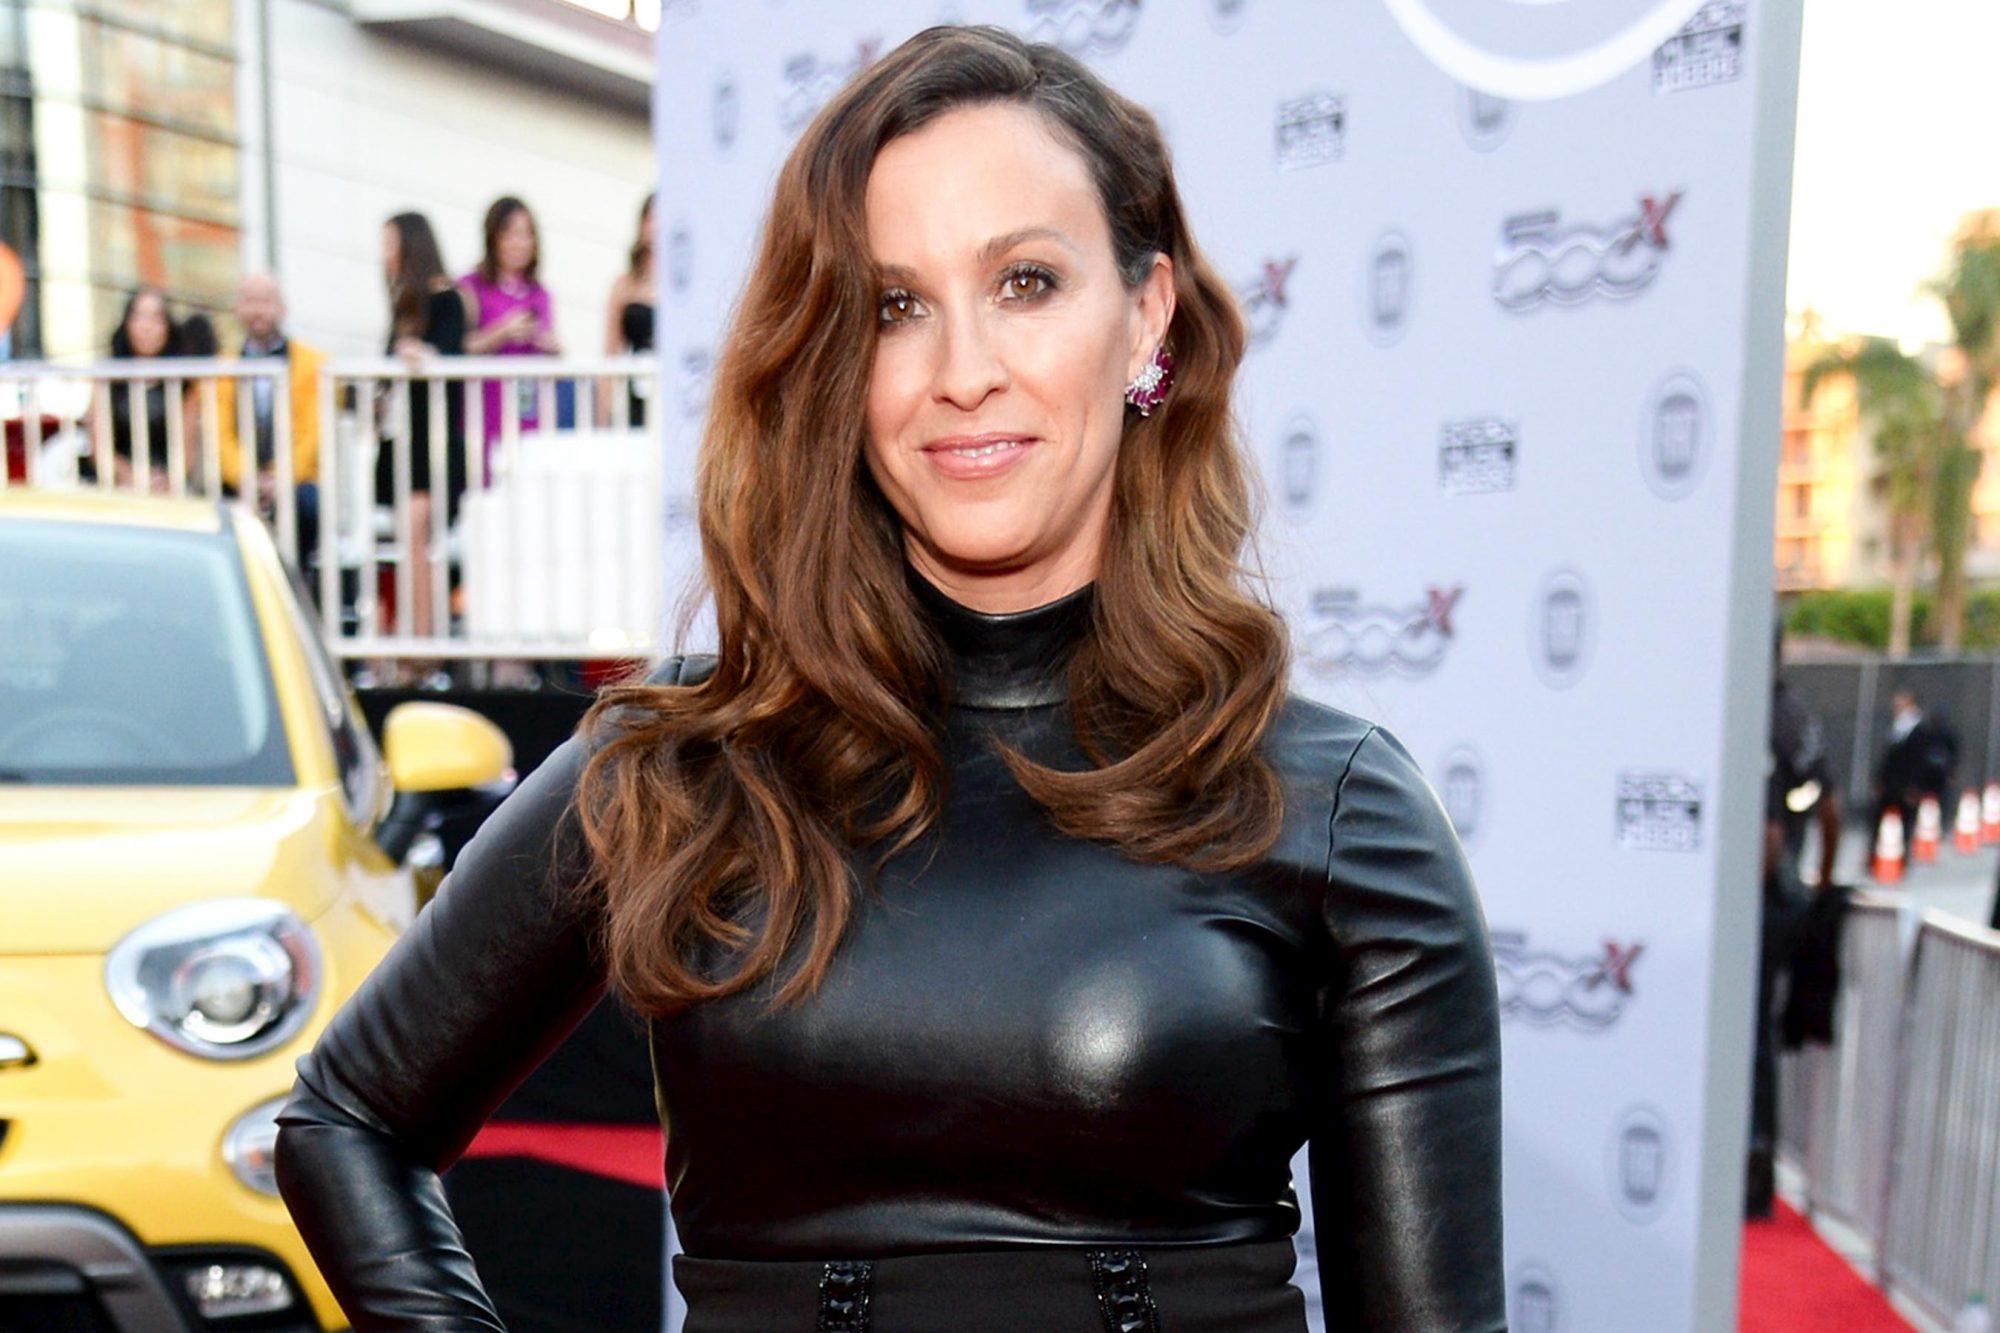 LOS ANGELES, CA - NOVEMBER 22: Recording artist Alanis Morissette attends the 2015 American Music Awards red carpet arrivals sponsored by FIAT 500X at LA Live on November 22, 2015 in Los Angeles, California. (Photo by Michael Kovac/AMA2015/Getty Images for FIAT)